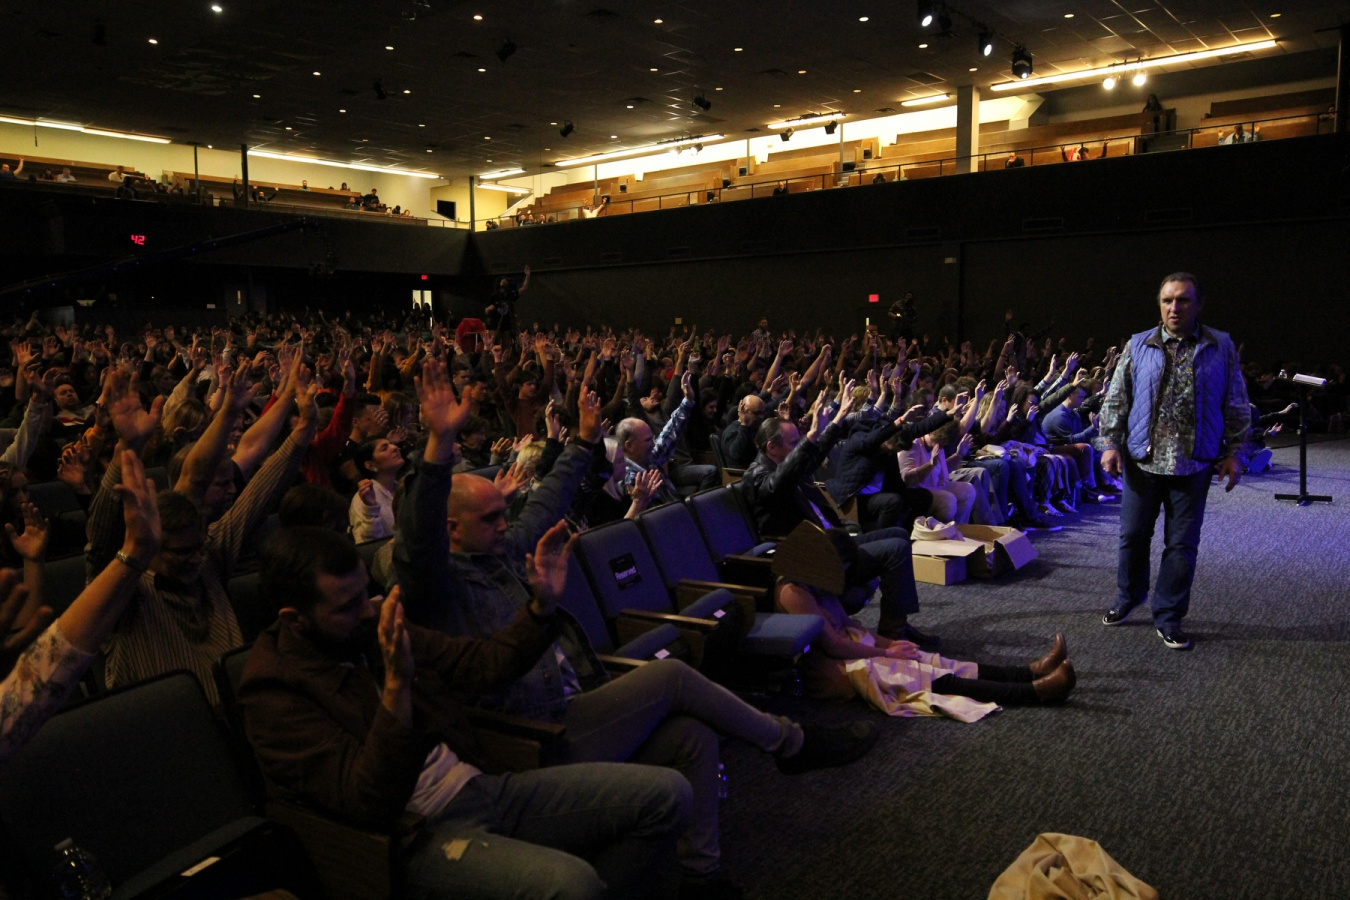 CFNI Revival - Dallas TX, Morning 1